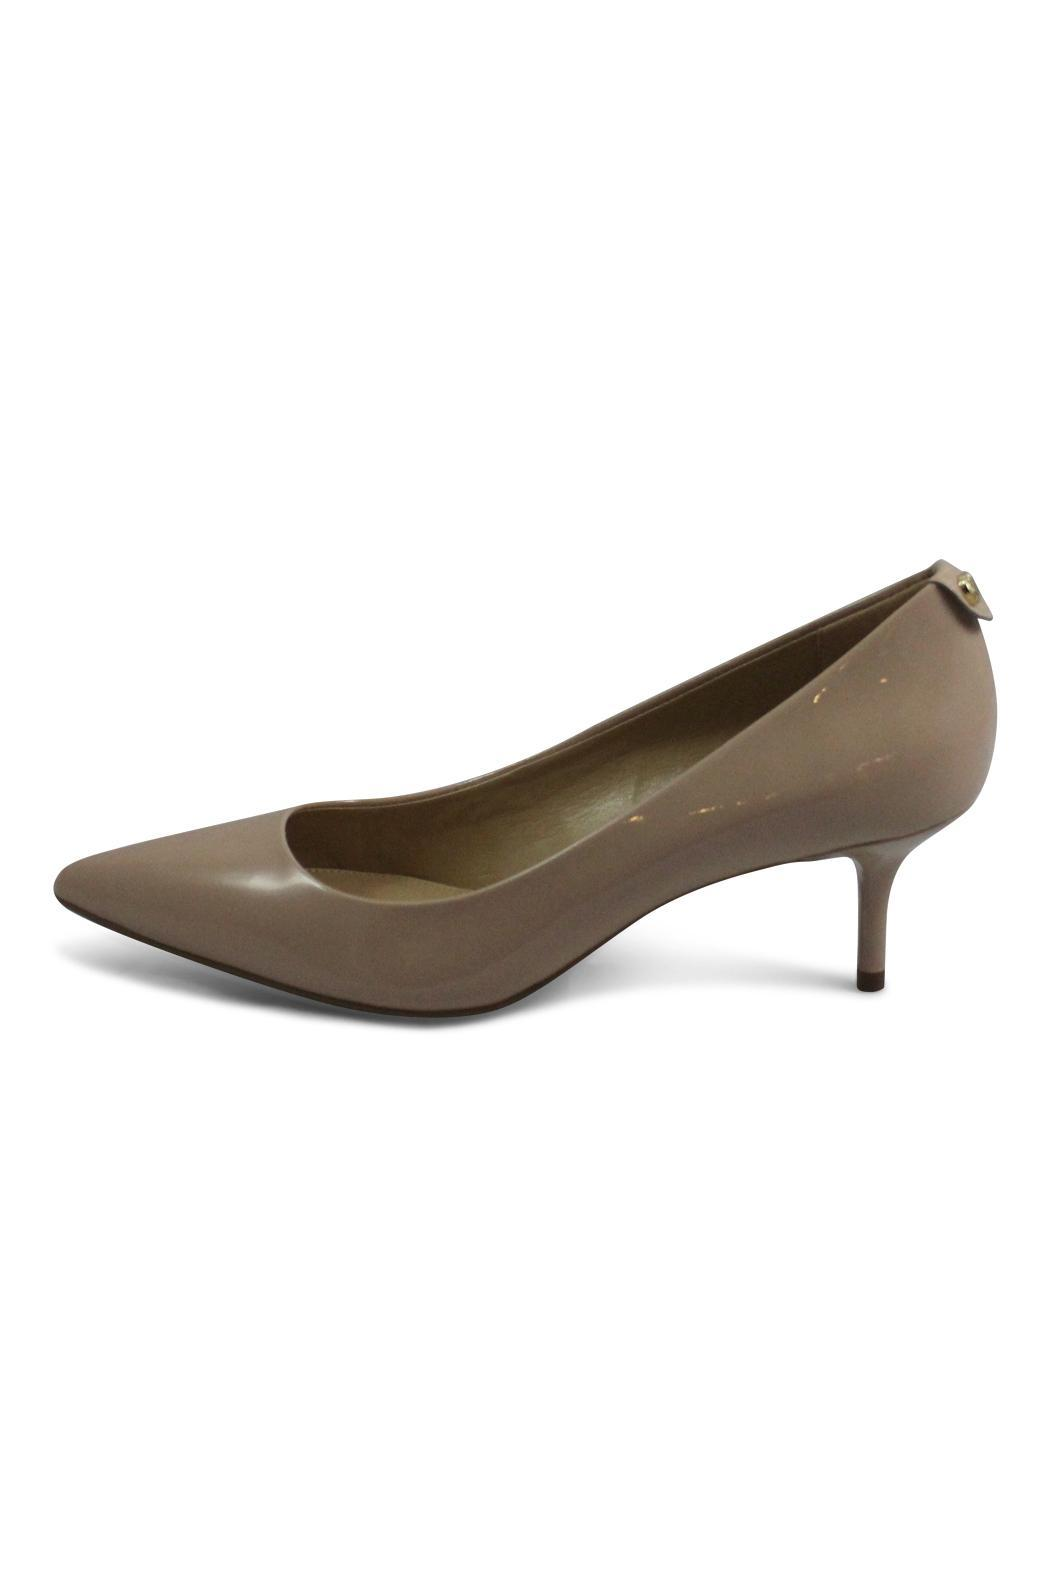 Michael Kors Beige Pointy Heel - Front Cropped Image